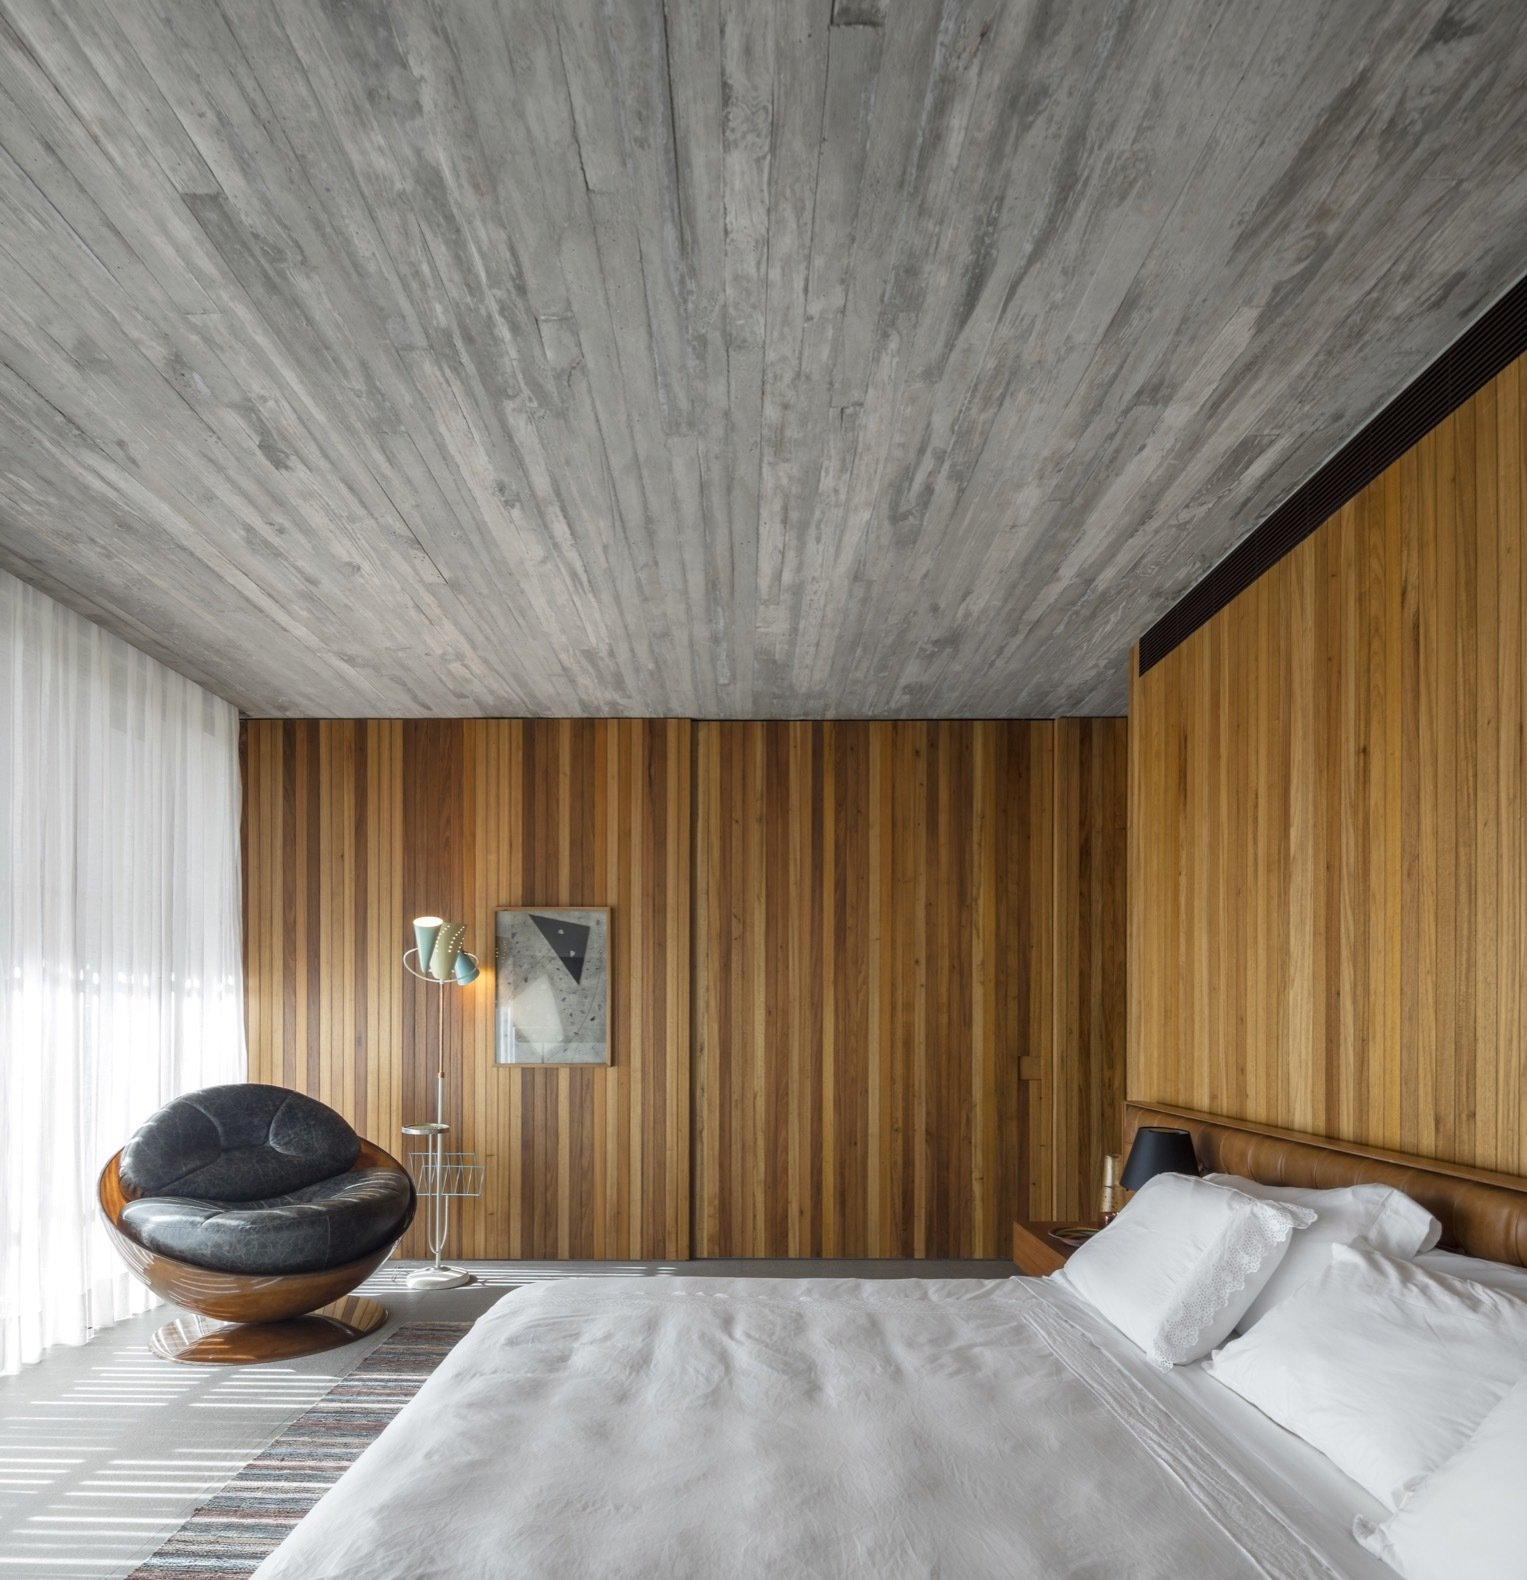 Bedroom, Concrete, Bed, Chair, Floor, Table, and Rug The interiors feature a minimal palette of timber and concrete. The bathroom of this bedroom is hidden behind a sliding wall.   Bedroom Concrete Floor Photos from An Expansive Grass Roof Tops This Modern Brazilian Home